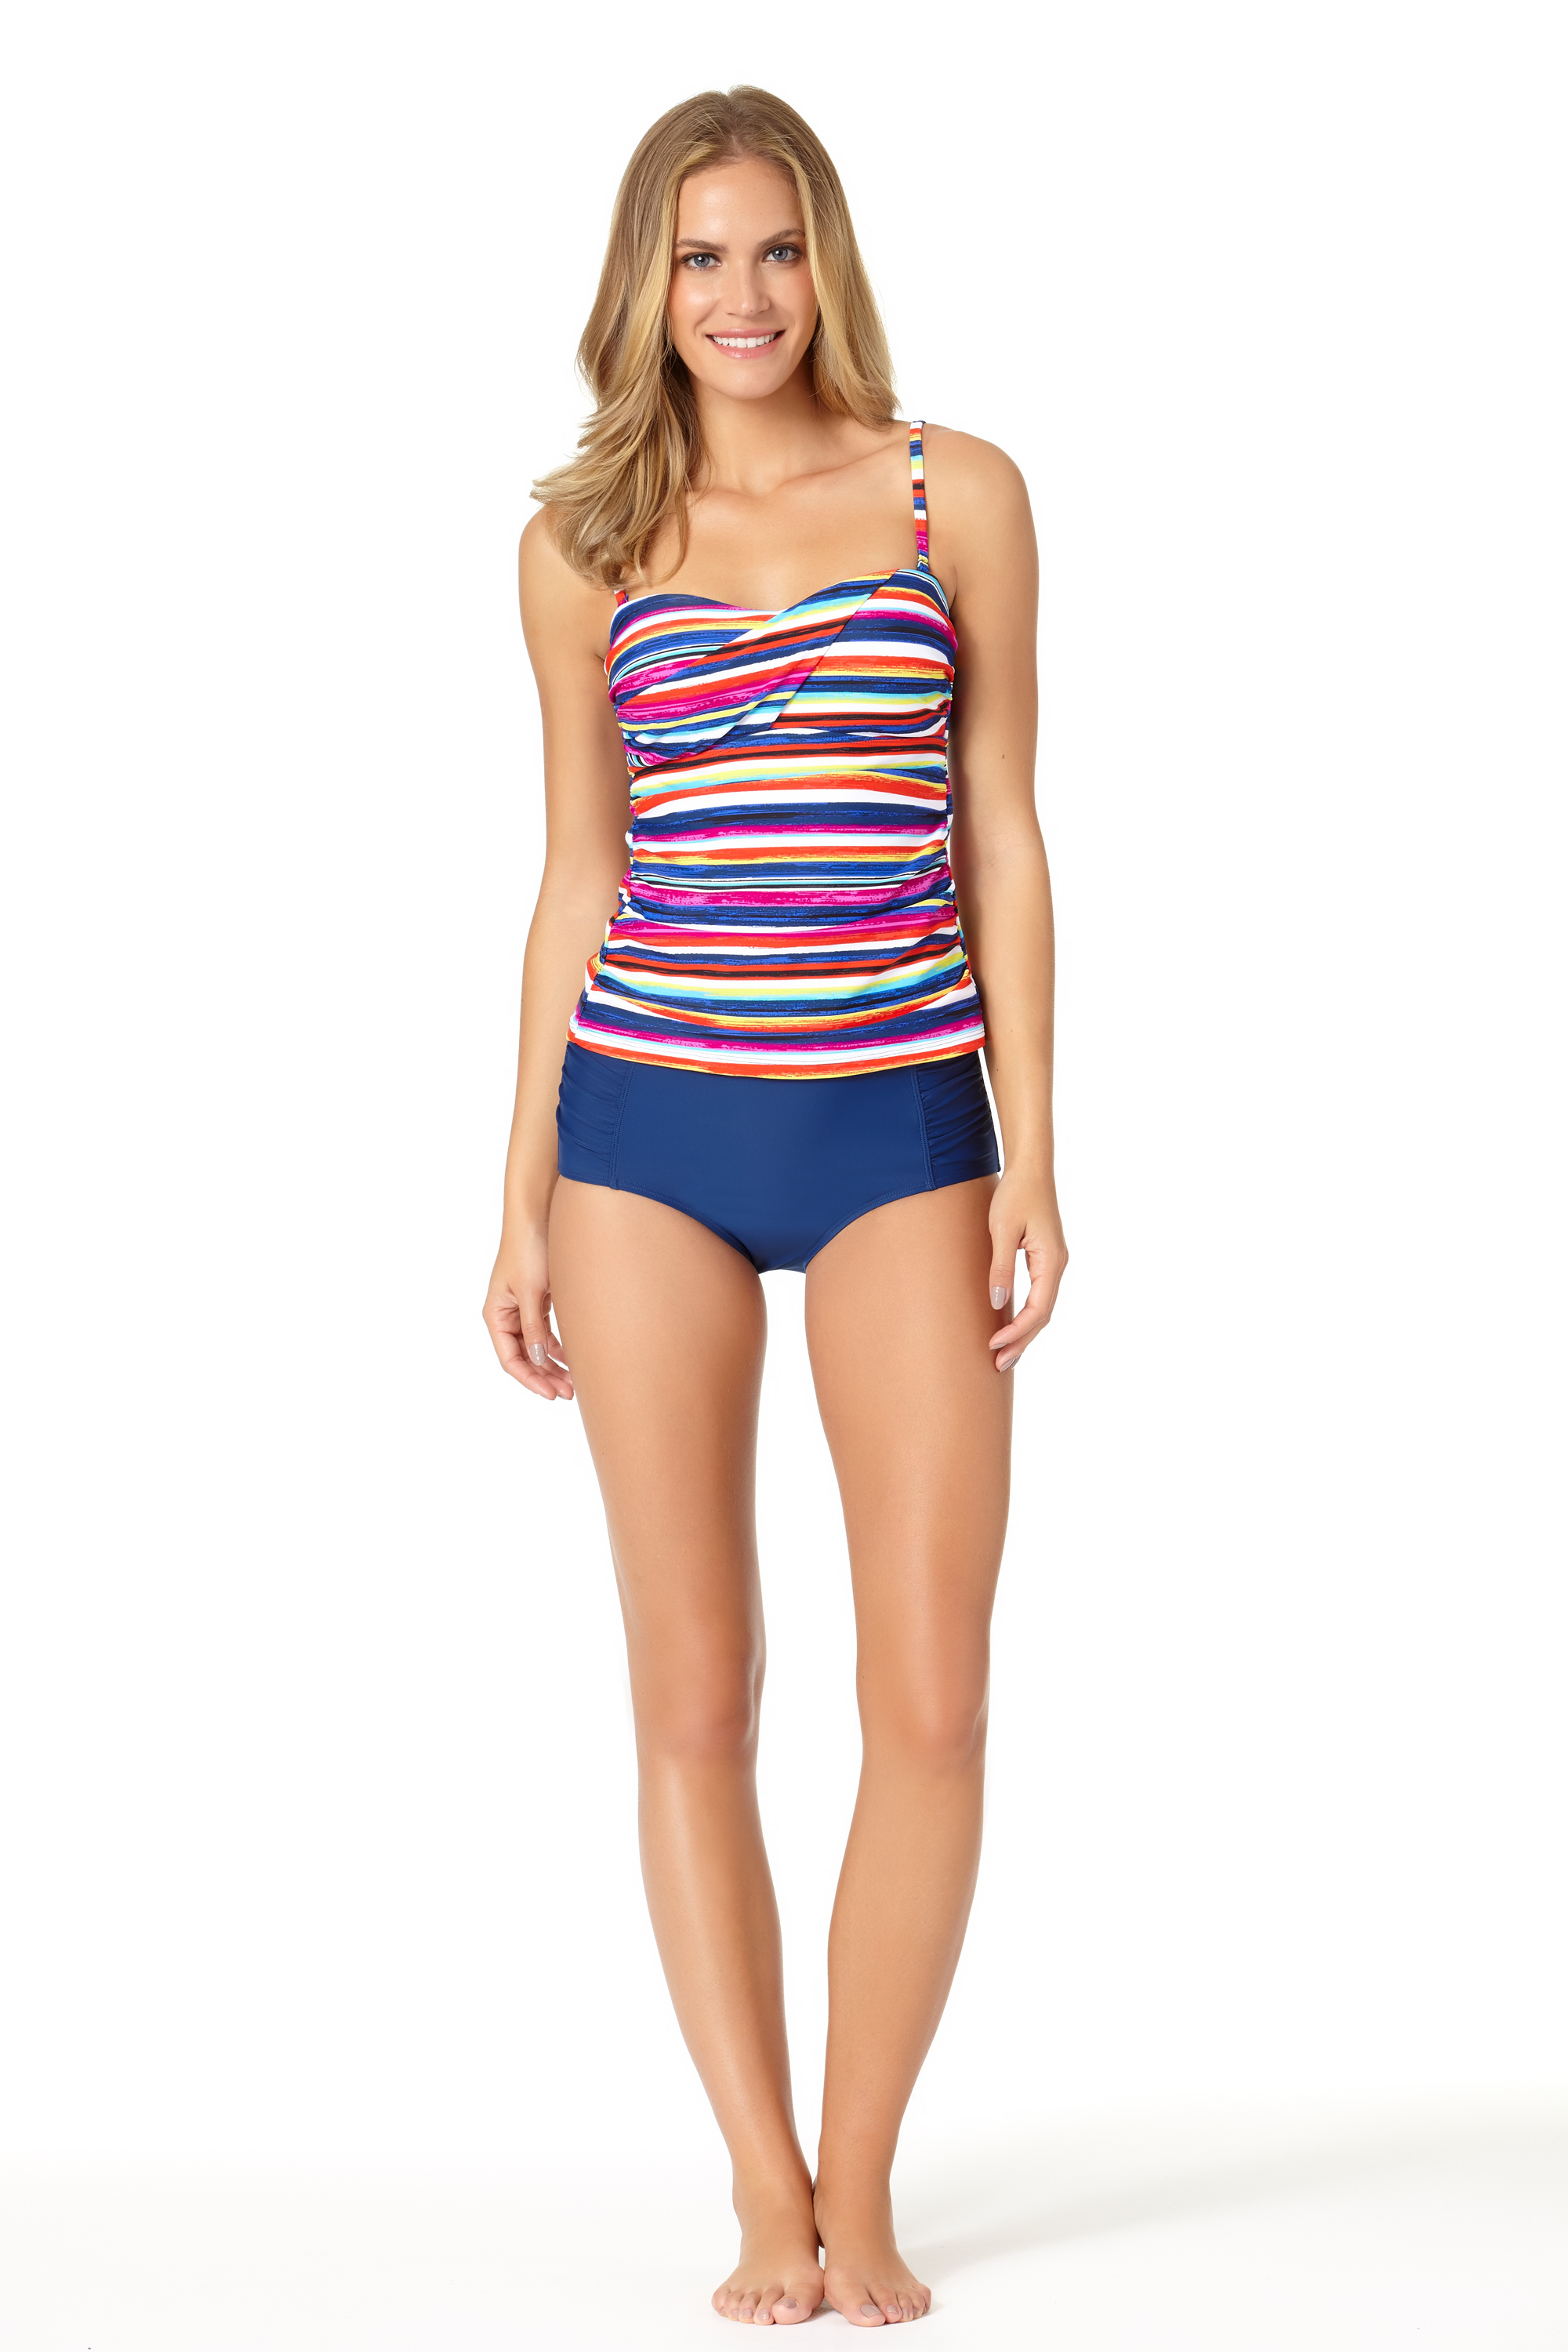 STYLE # CTL17403T / CTL17500B - Carnival Stripe Twist Bandini TopSOLD OUTSolid High Waist BottomSOLD OUT